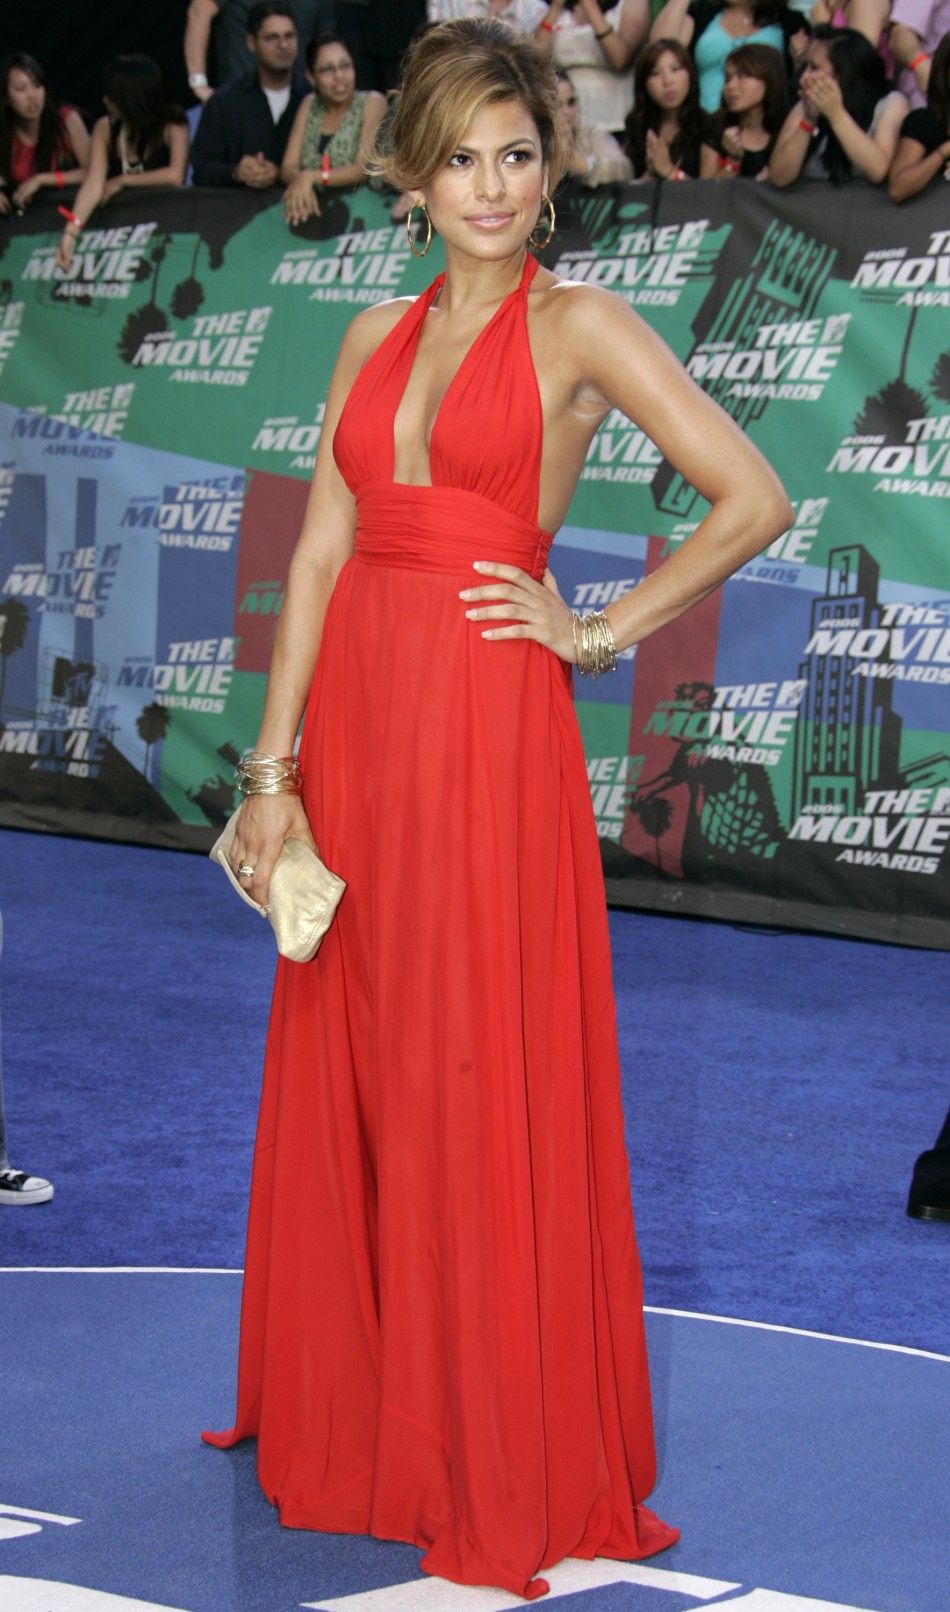 Actress Eva Mendes arrives at the taping of the 2006 MTV Movie Awards in Los Angeles June 3, 2006.